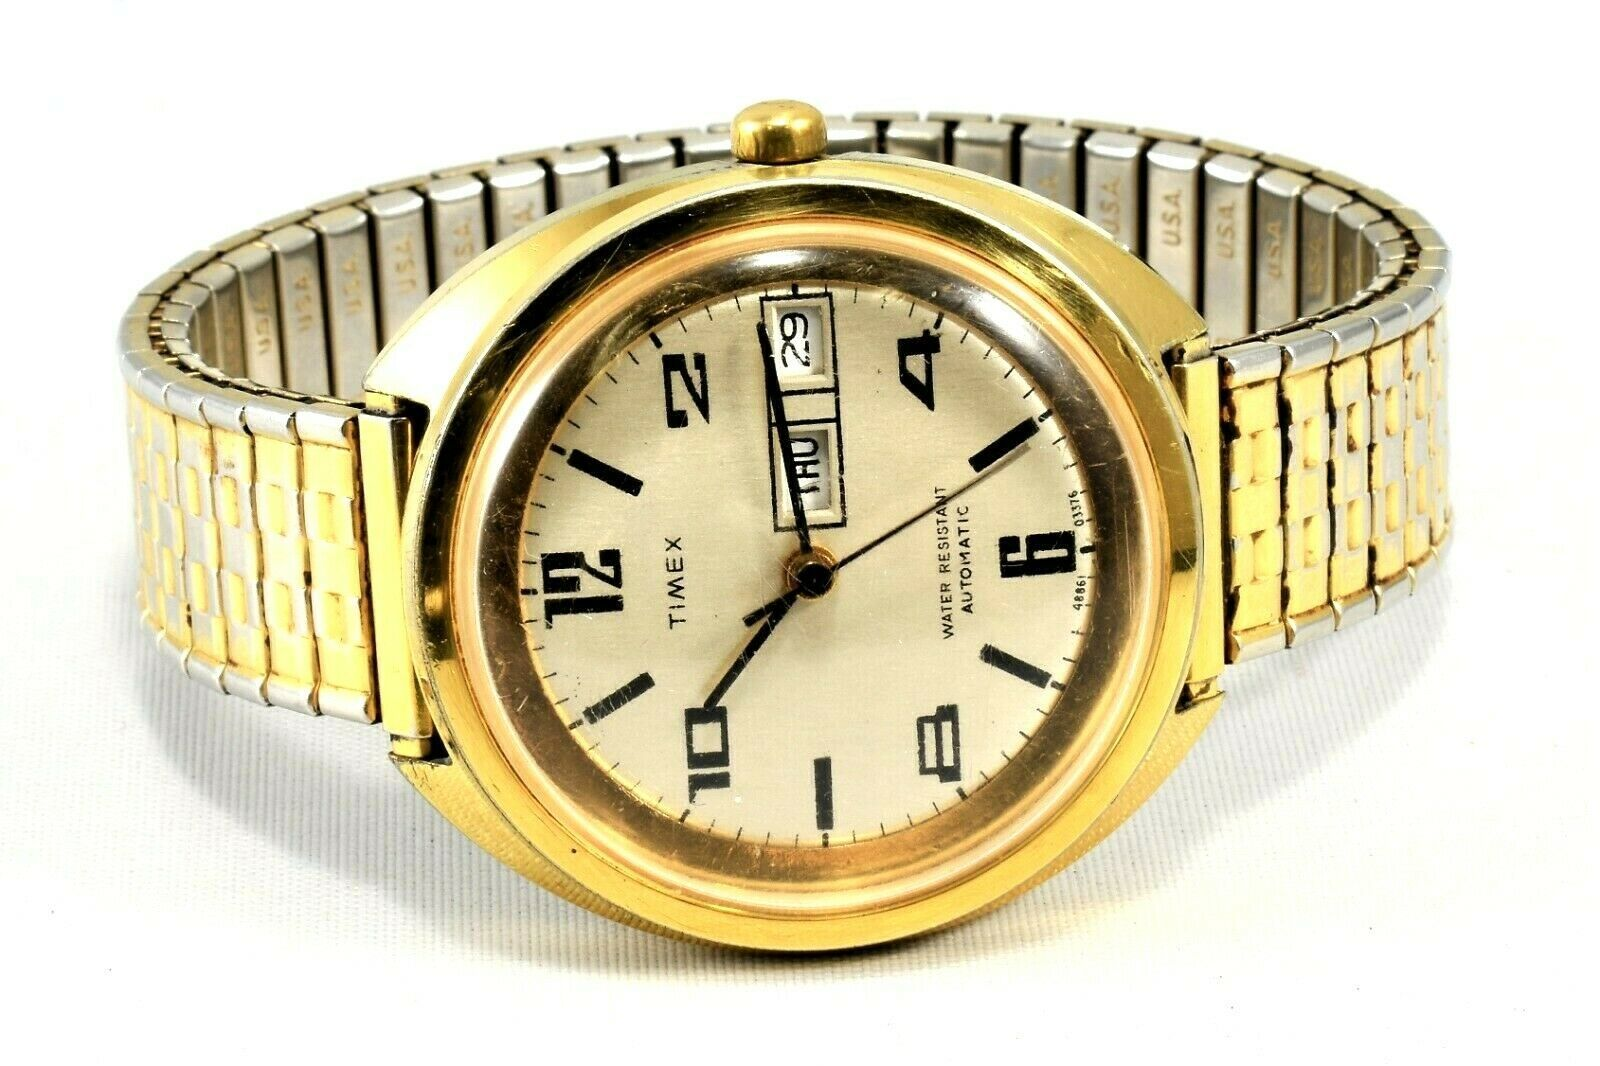 1976 Britain Timex Viscount Automatic Watch Day Date Big Dial Excellent Running - $79.19